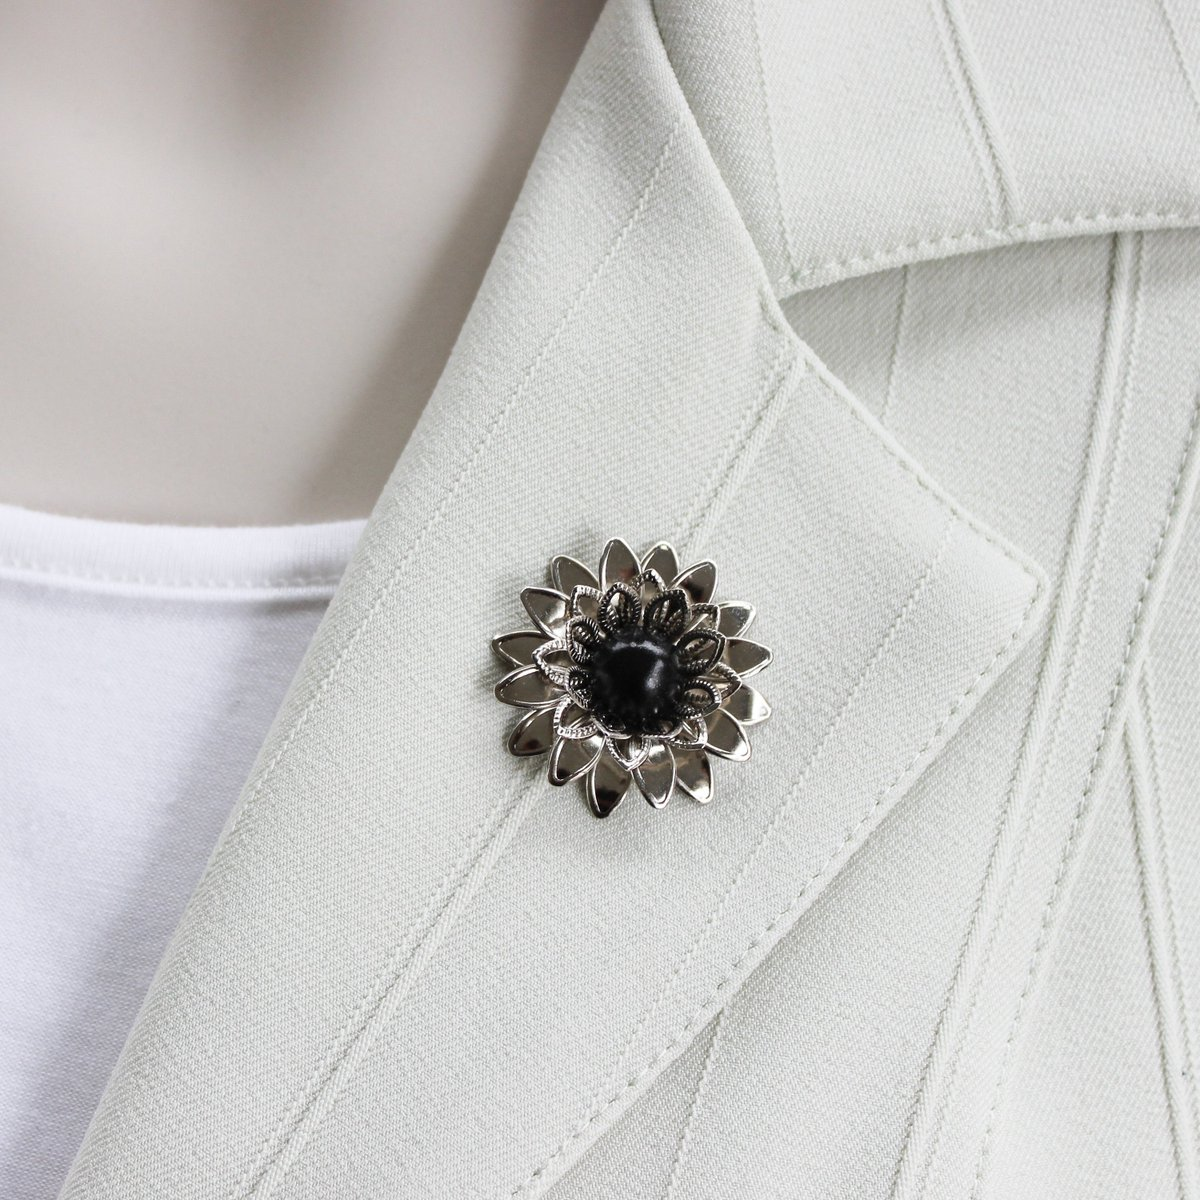 Silver Magnetic Brooch Pin, Silver Flower Brooch, Magnetic Pin, Silver and Black Magnet Pin, Unique Gift for Woman, Lapel Flowers for Women https://t.co/nwXxdkgiV1 #shopsmall #gifts #etsy #style #smallbiz #shopping #ecommerce #etsyshop https://t.co/DrK0p16UGI